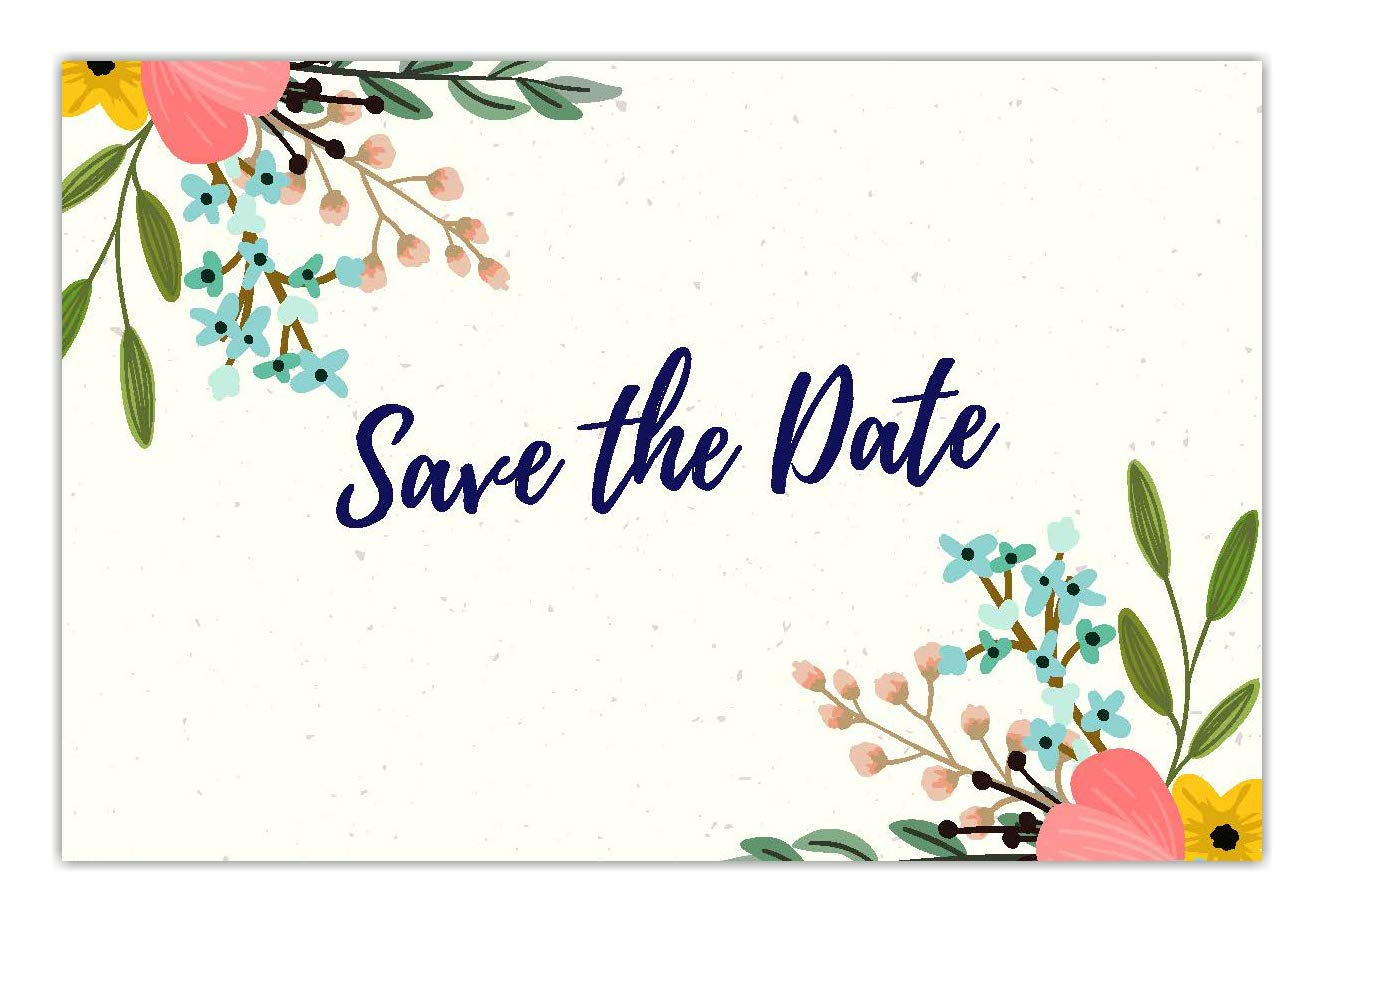 30 Save The Date Cards For Wedding Engagement Anniversary Baby Shower Birthday Party Postcard Invitations Blank Event Announcements Floral